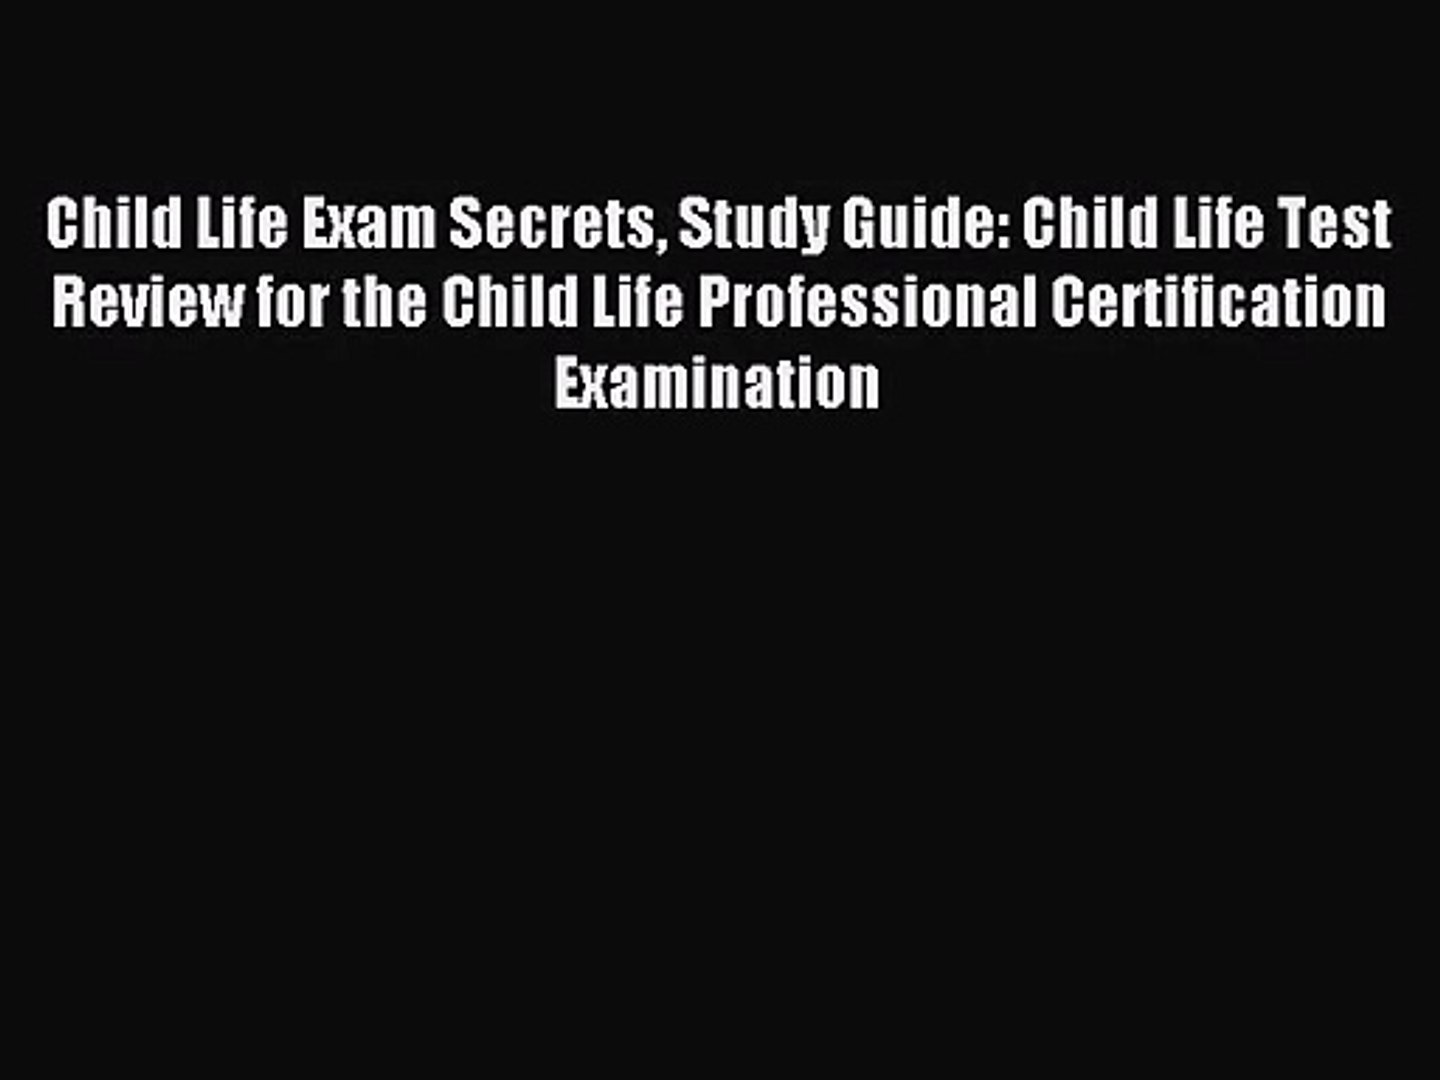 Child Life Exam Secrets Study Guide: Child Life Test Review for the Child Life Professional